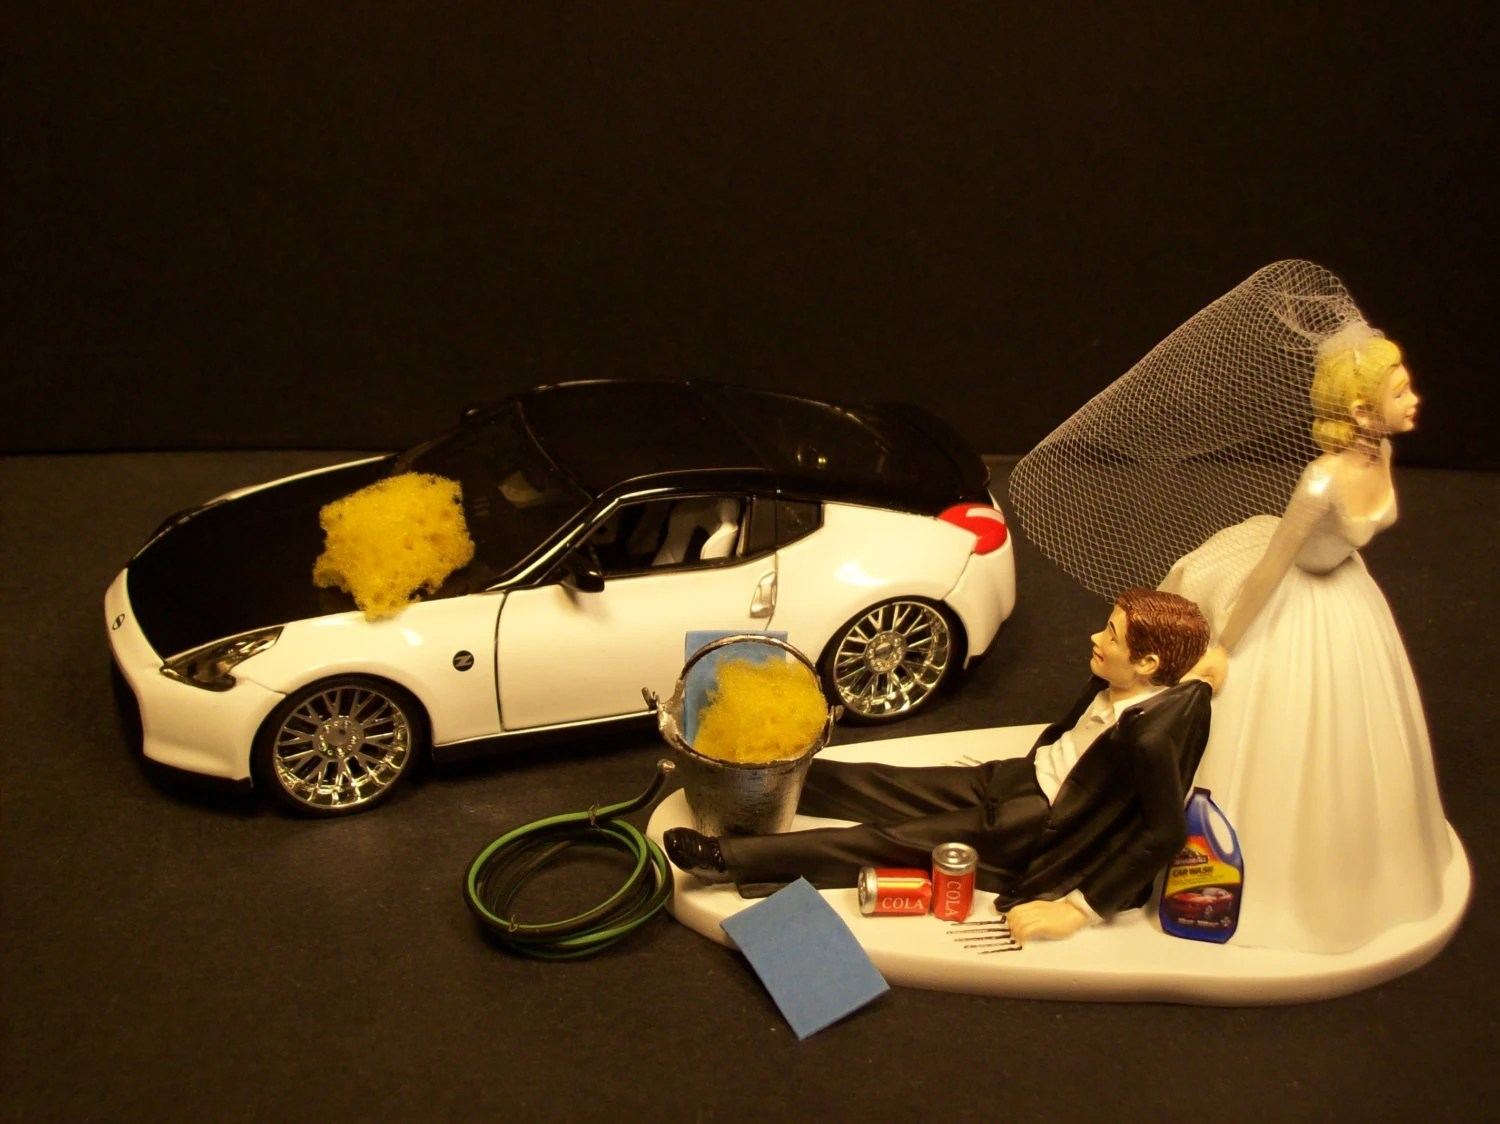 AUTO CAR Wash Nissan 370 Z Bride And Groom Wedding Cake Topper